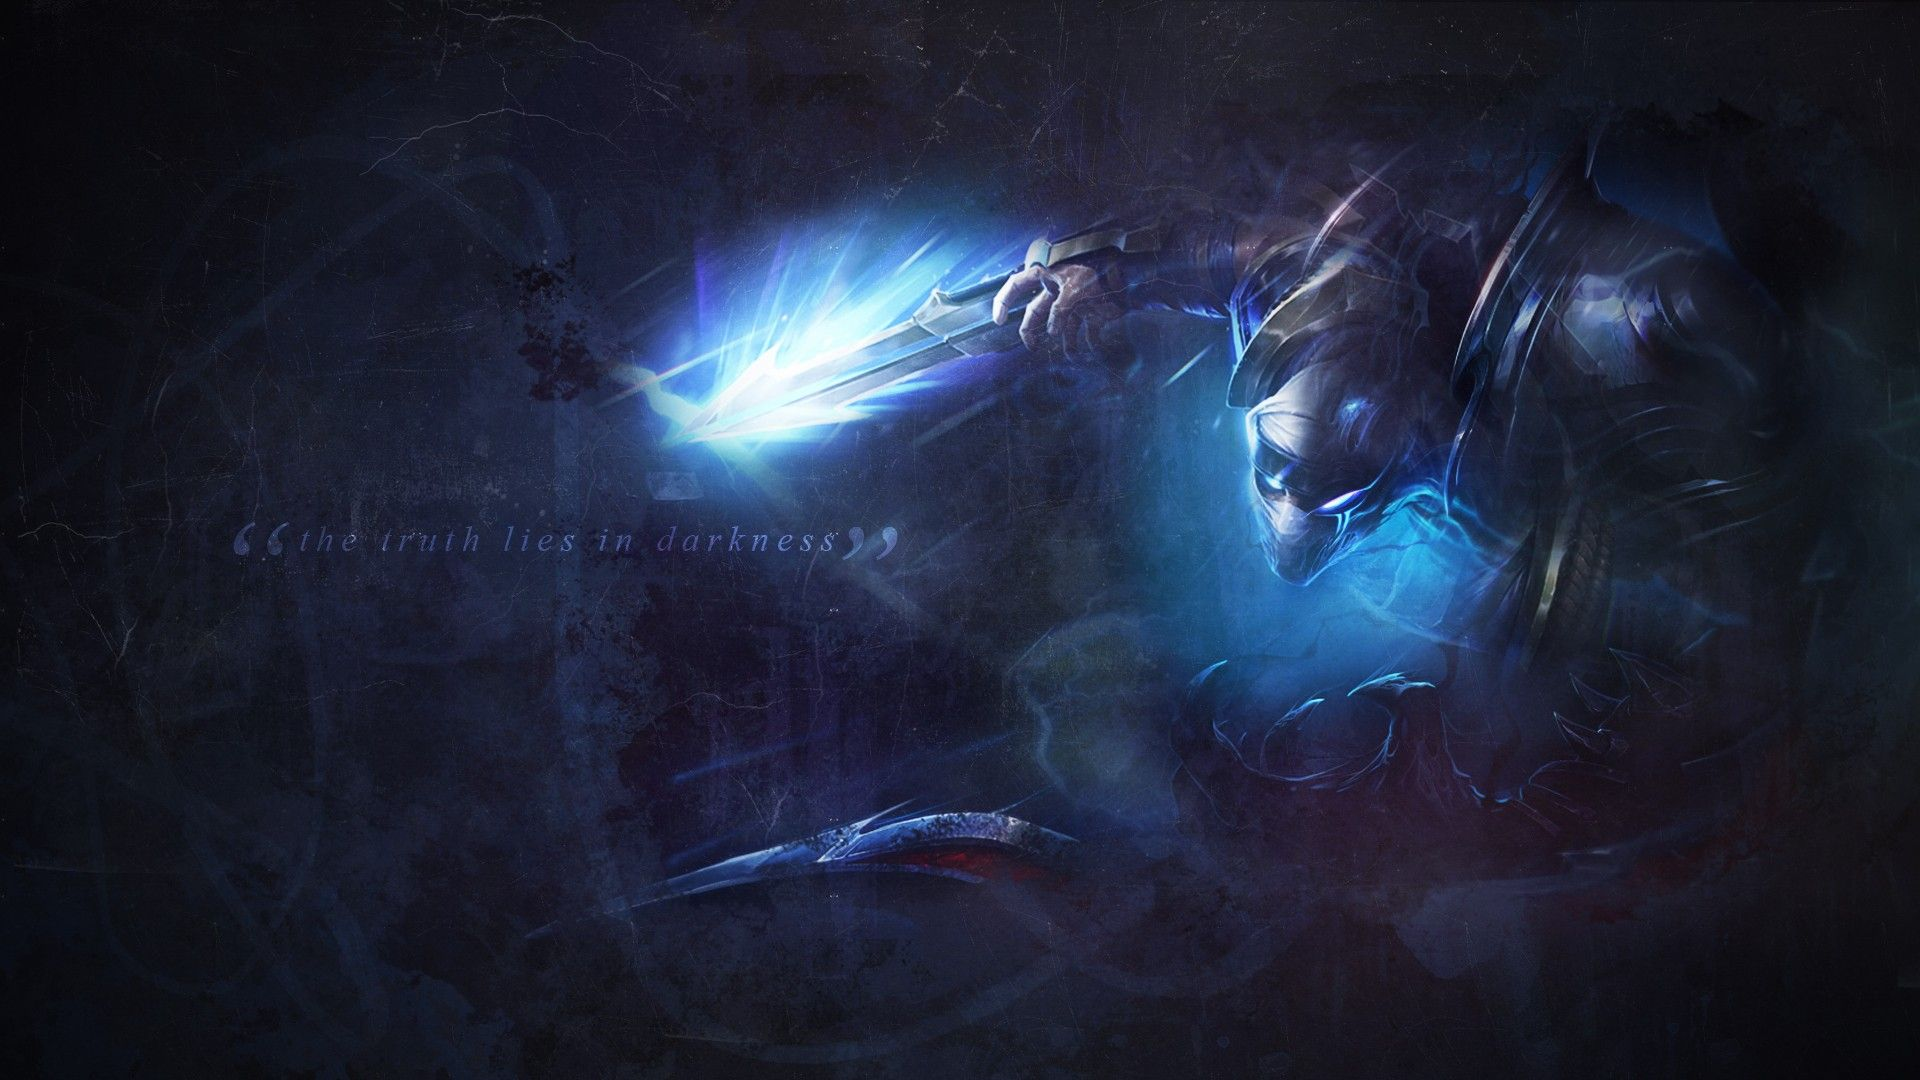 League Of Legends Video Games Nocturne Zed Wallpaper All